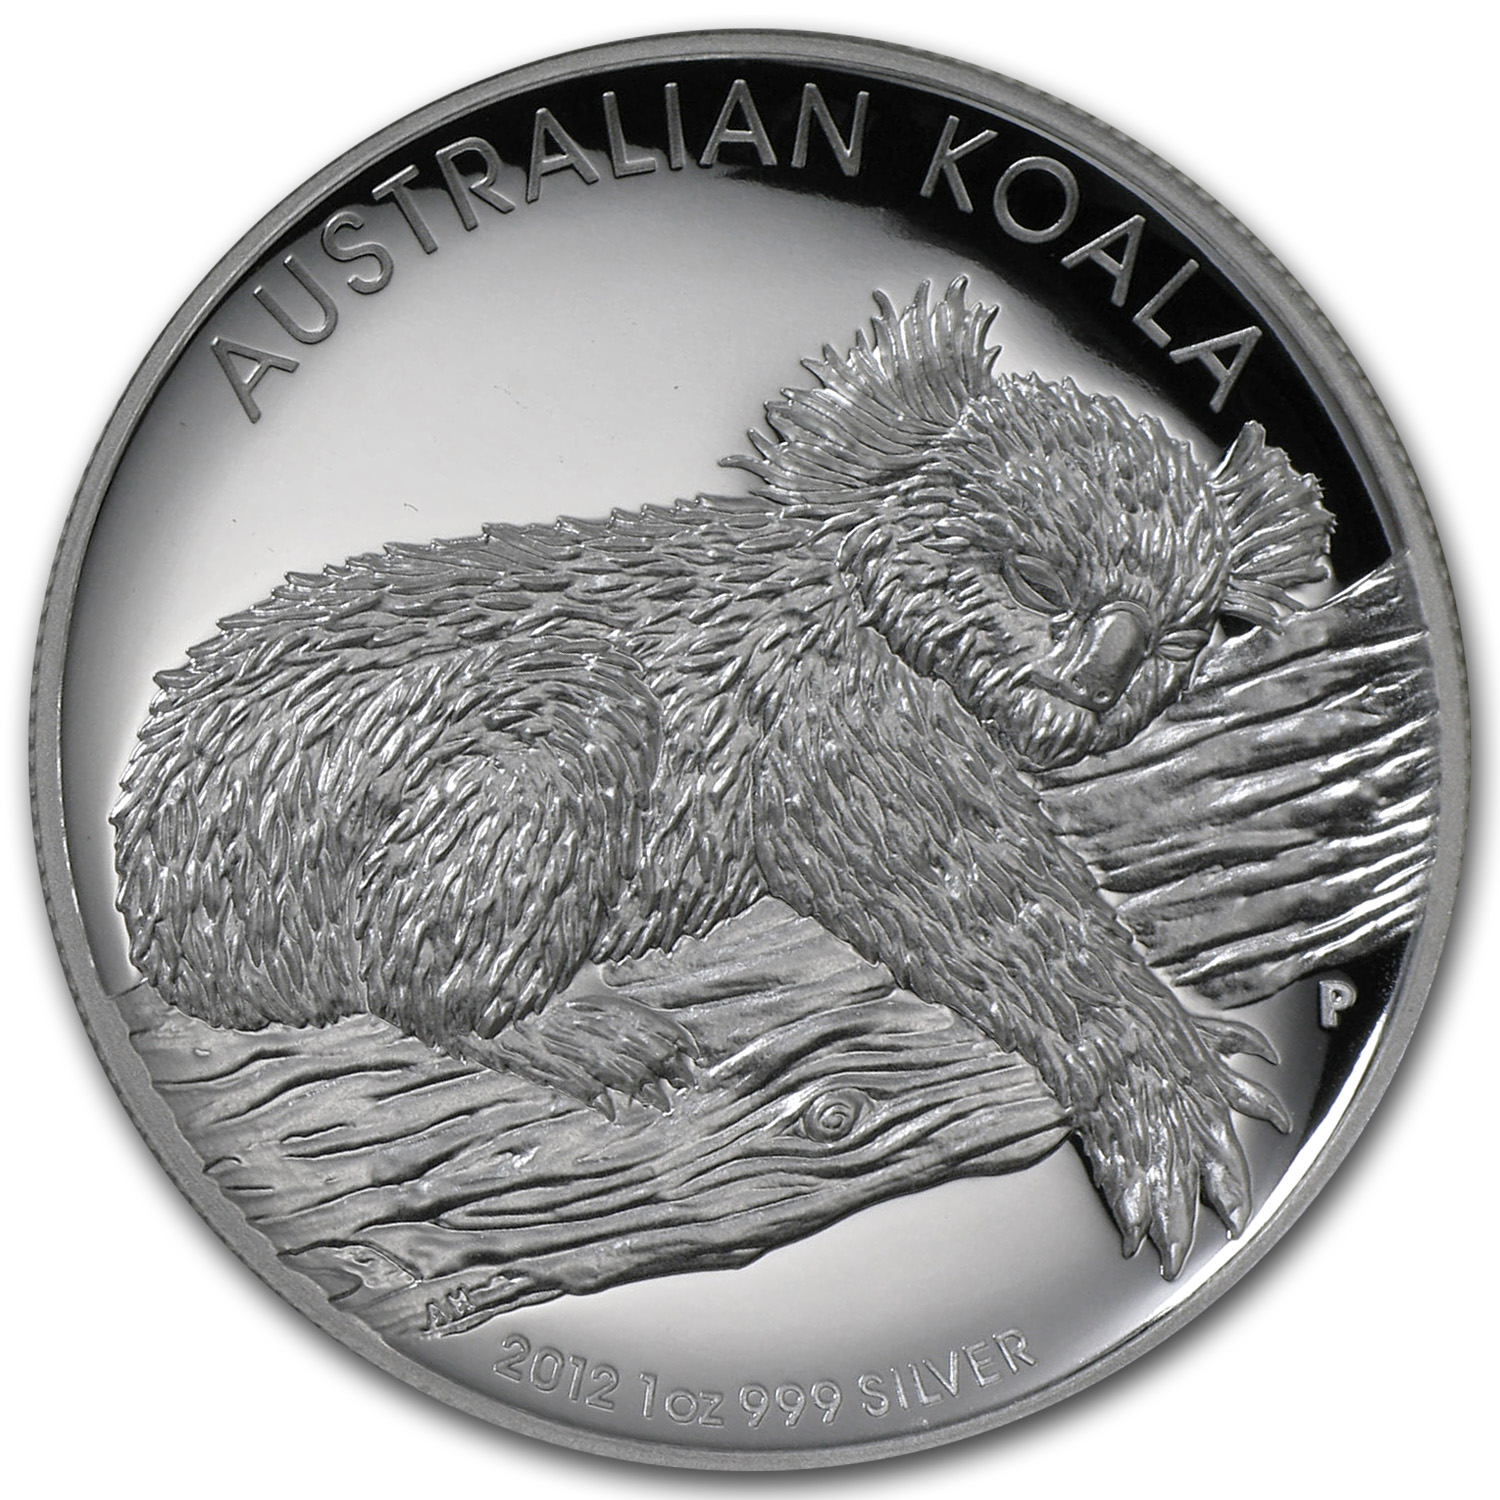 2012 Australia 1 oz Silver Proof High Relief Koala (w/Box & COA)